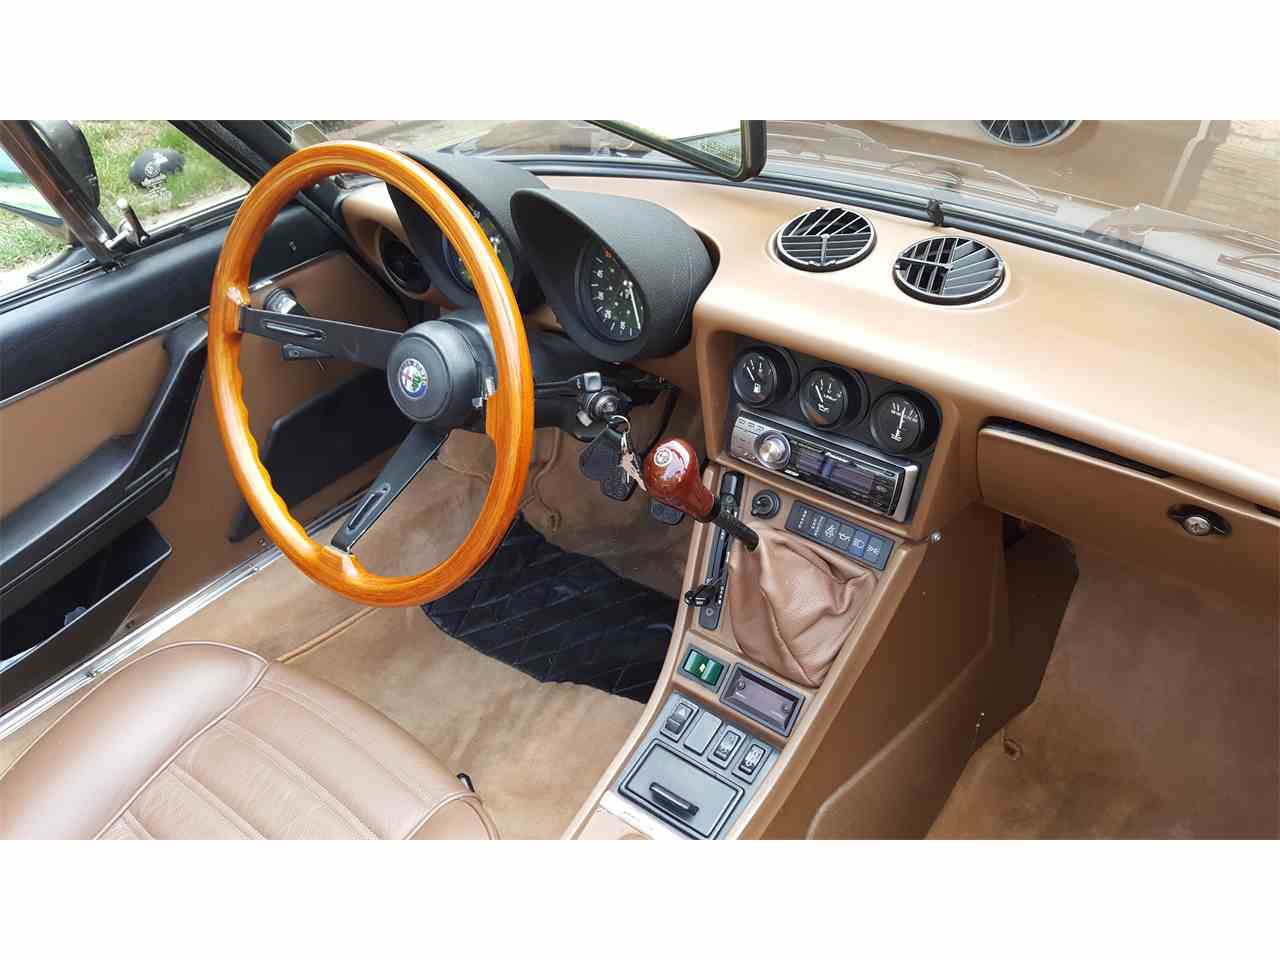 Large Picture of 1984 Alfa Romeo 2000 Spider Veloce located in Illinois - $9,500.00 Offered by a Private Seller - KDDZ